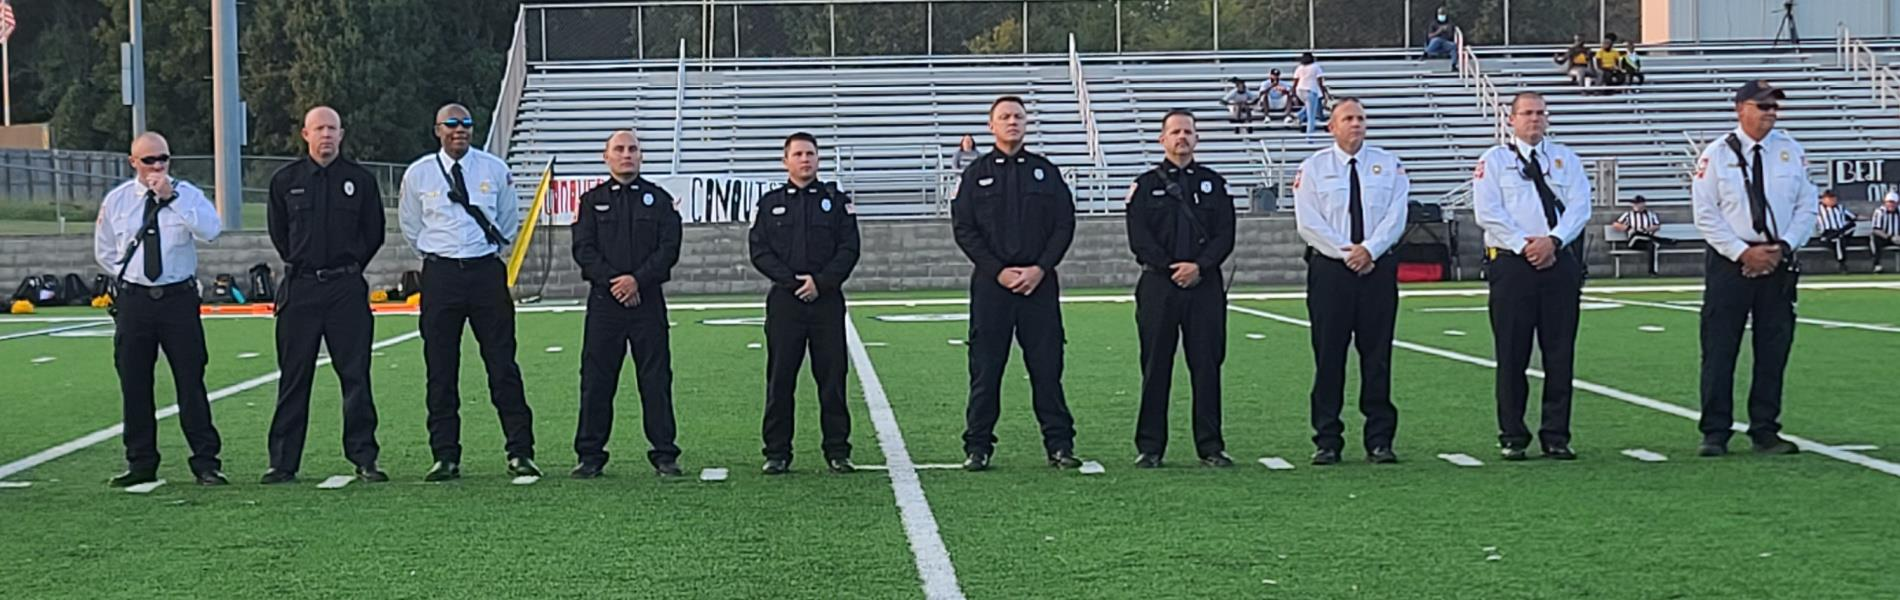 First Responders Recognition at Sept. 10th Game vs Starkville